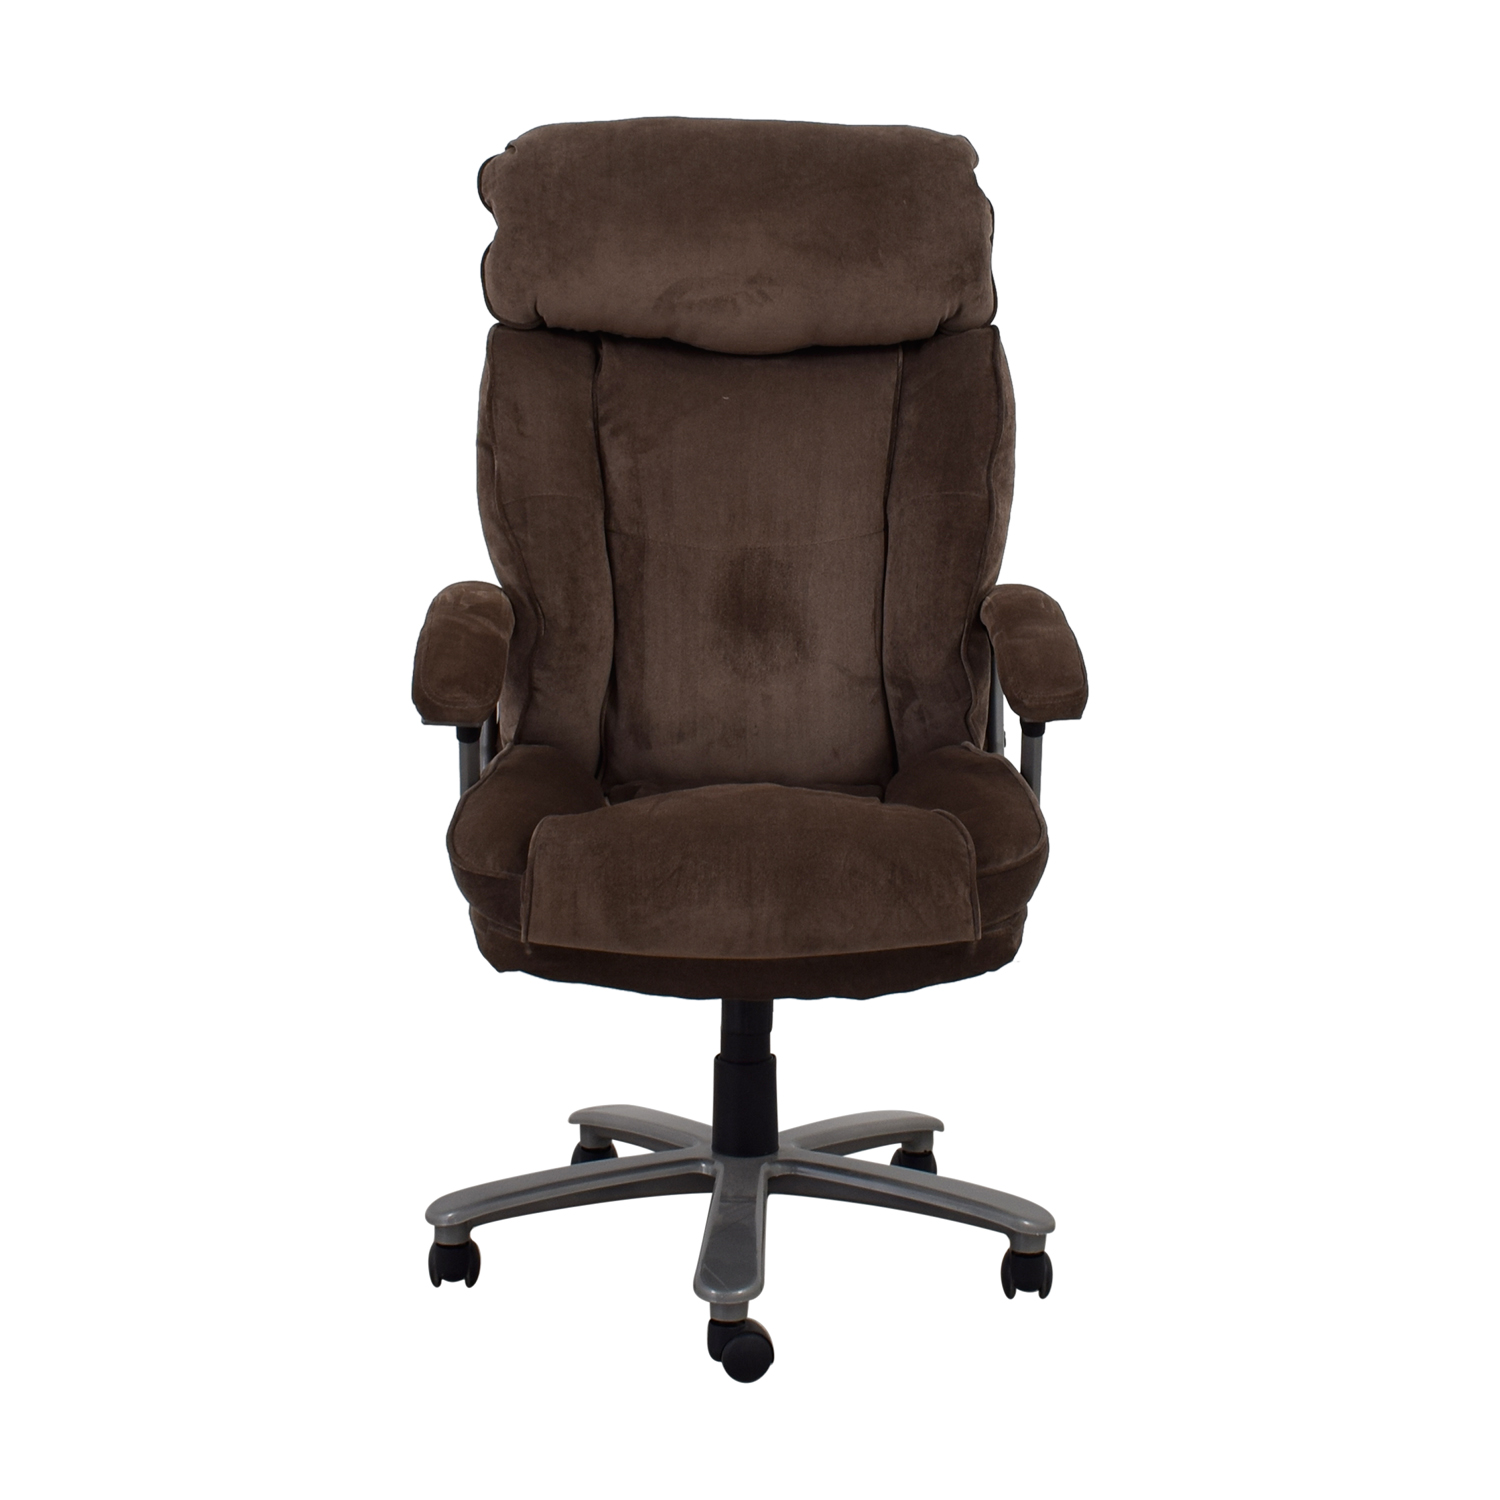 buy Office Depot Office Depot Grey Office Chair online